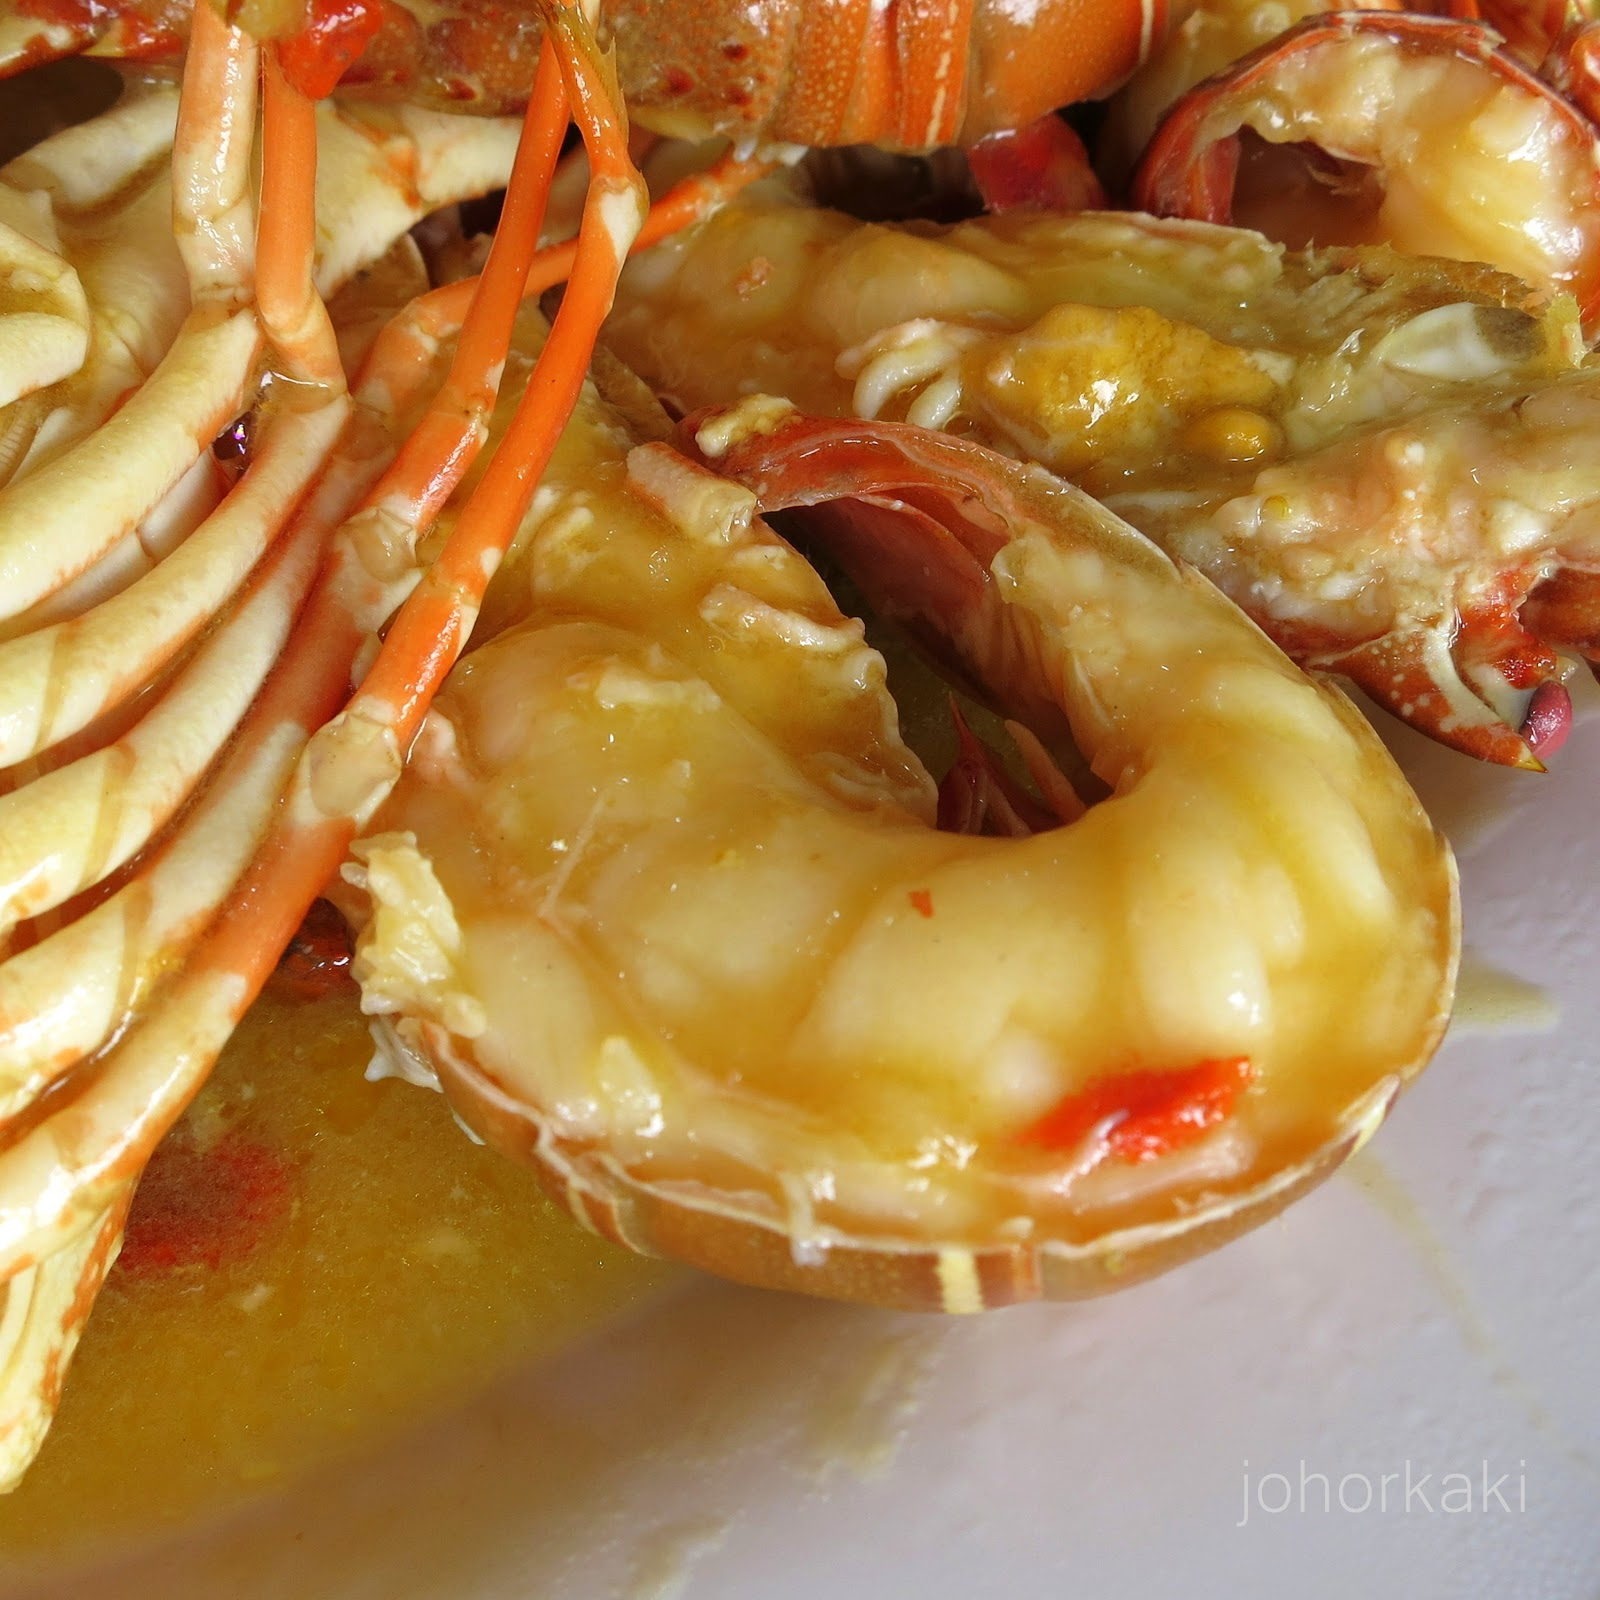 Top 10 unique johor foods which visitors must try 2014 for Cuisine kaki